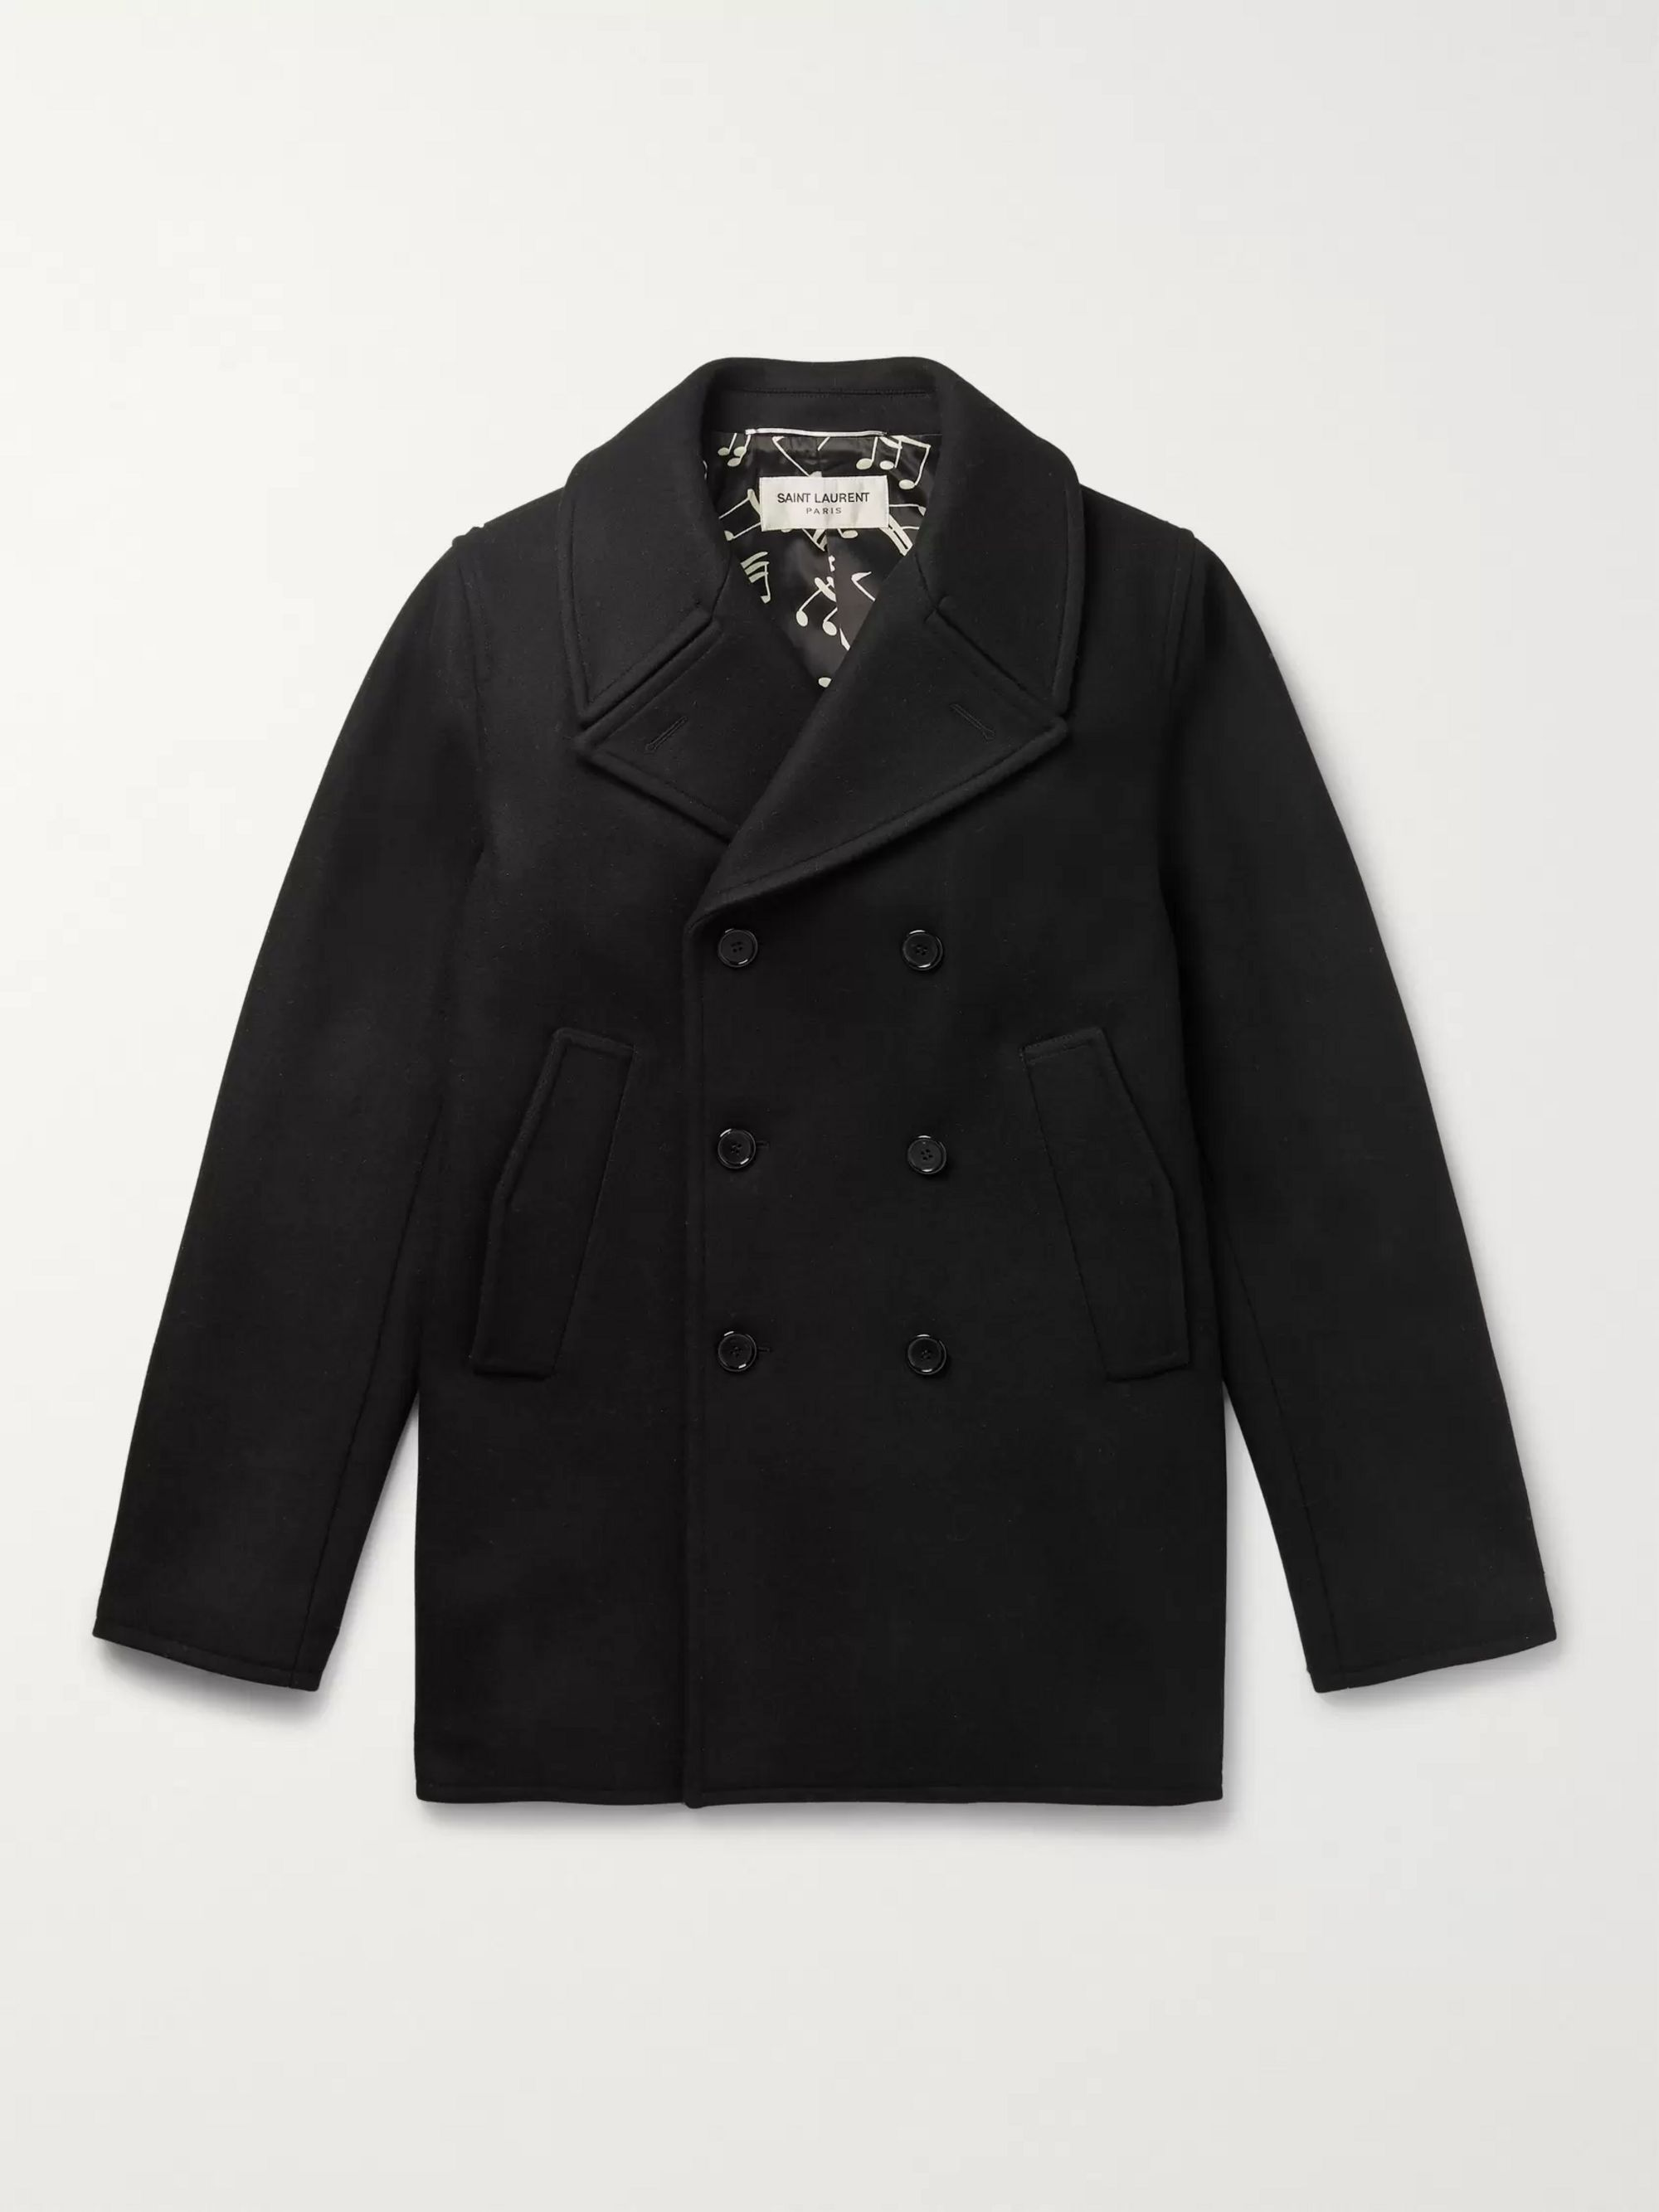 SAINT LAURENT Virgin Wool Peacoat